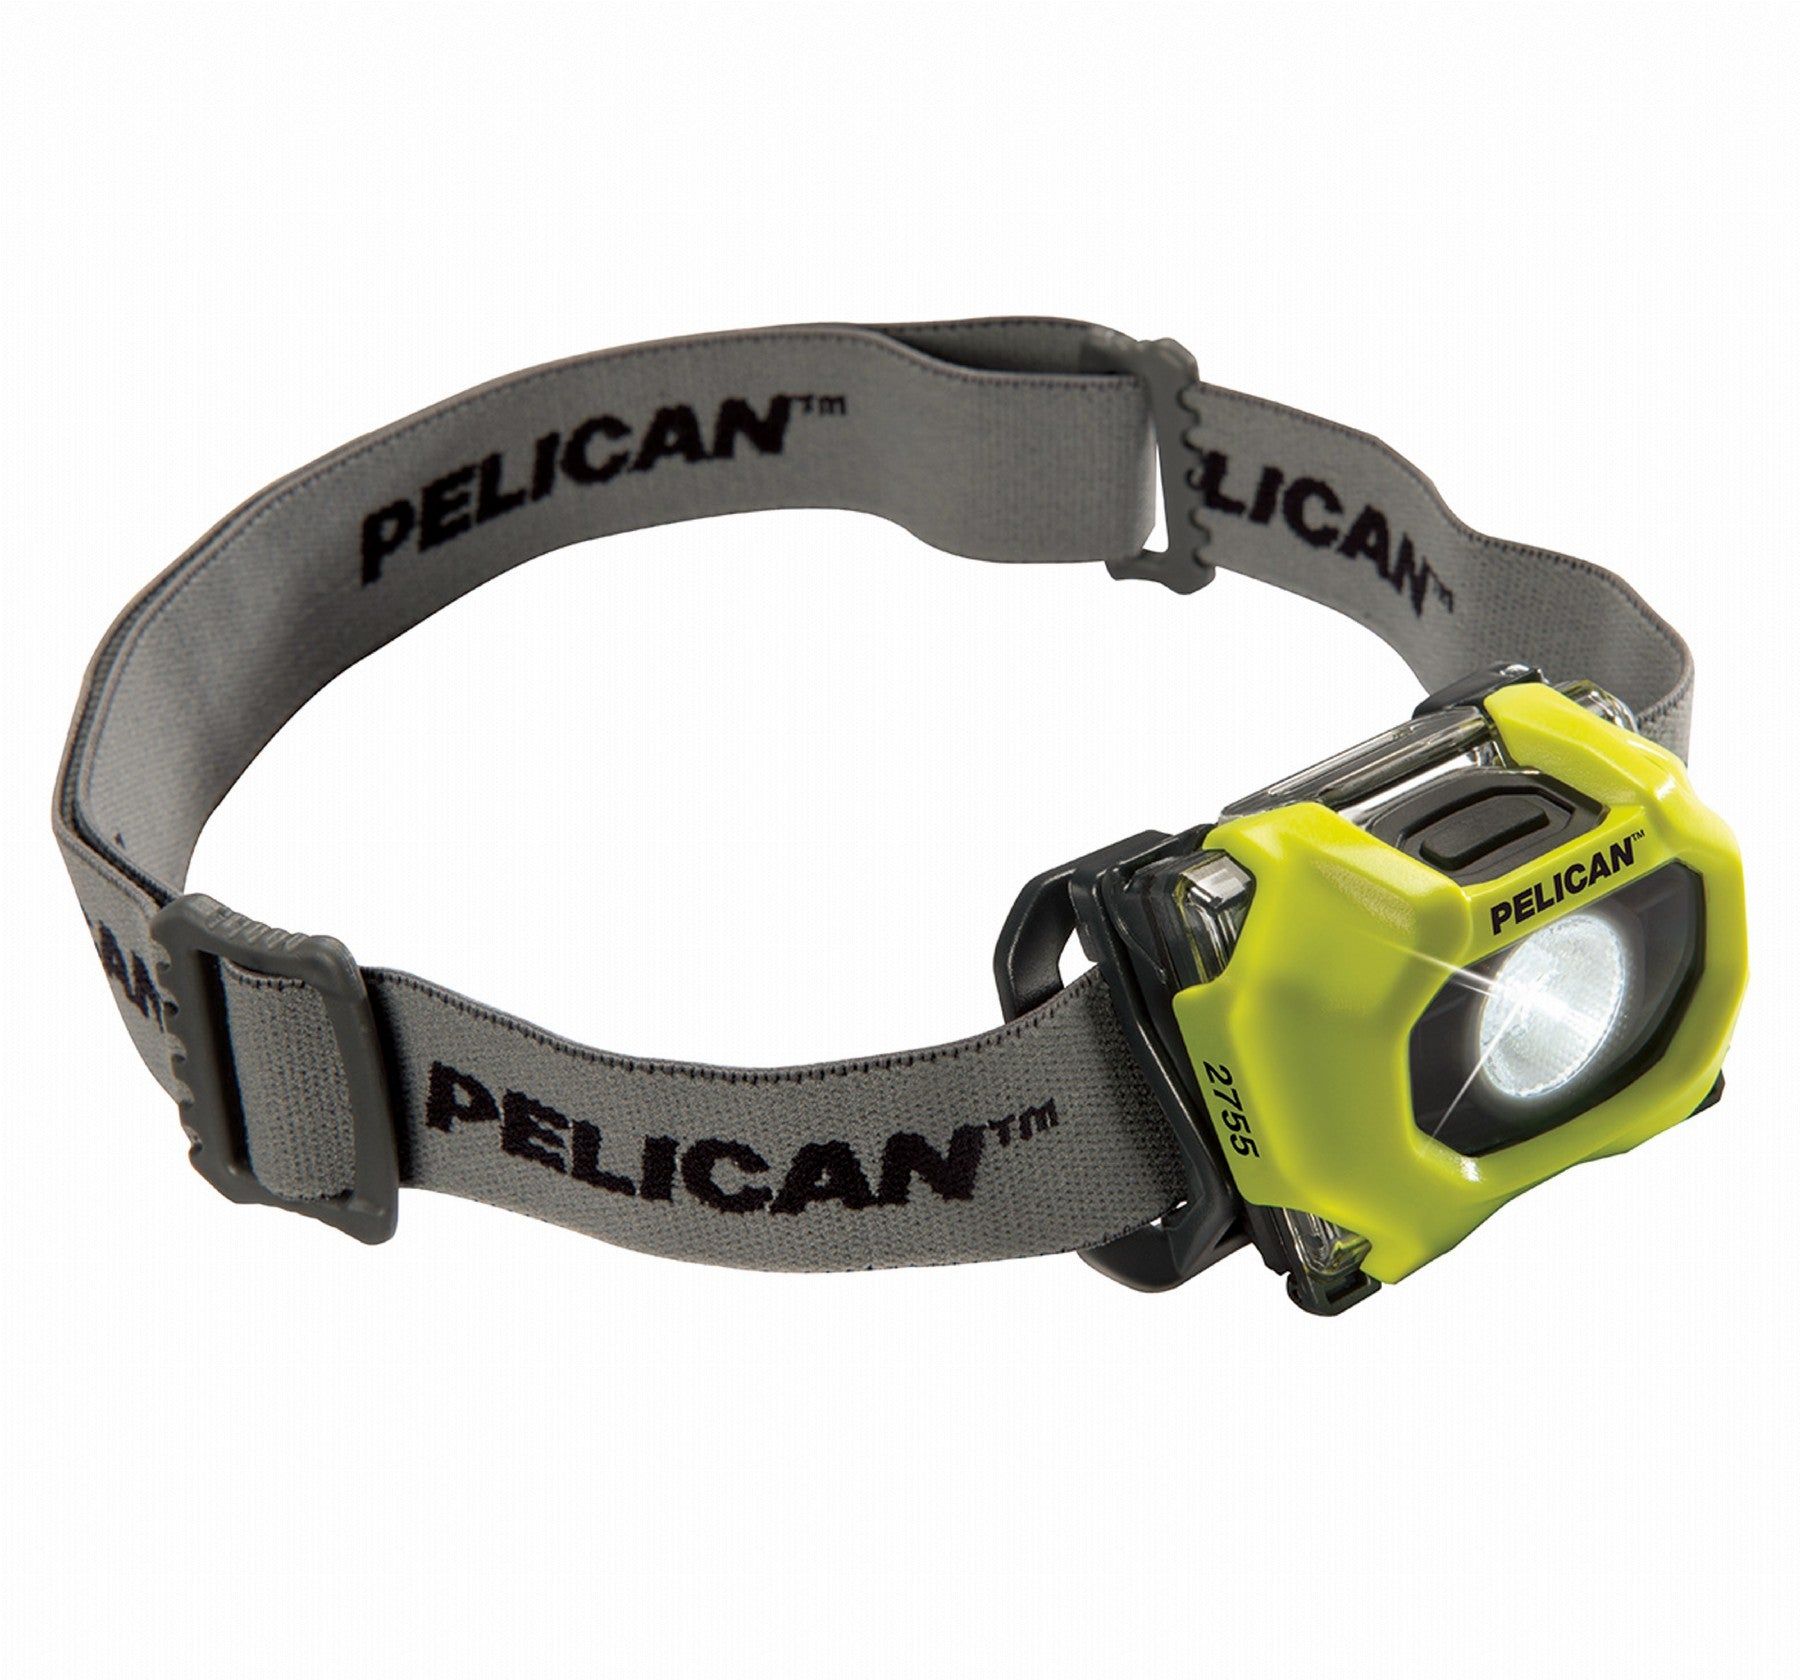 Pelican 2755 LED Headlight IECEx